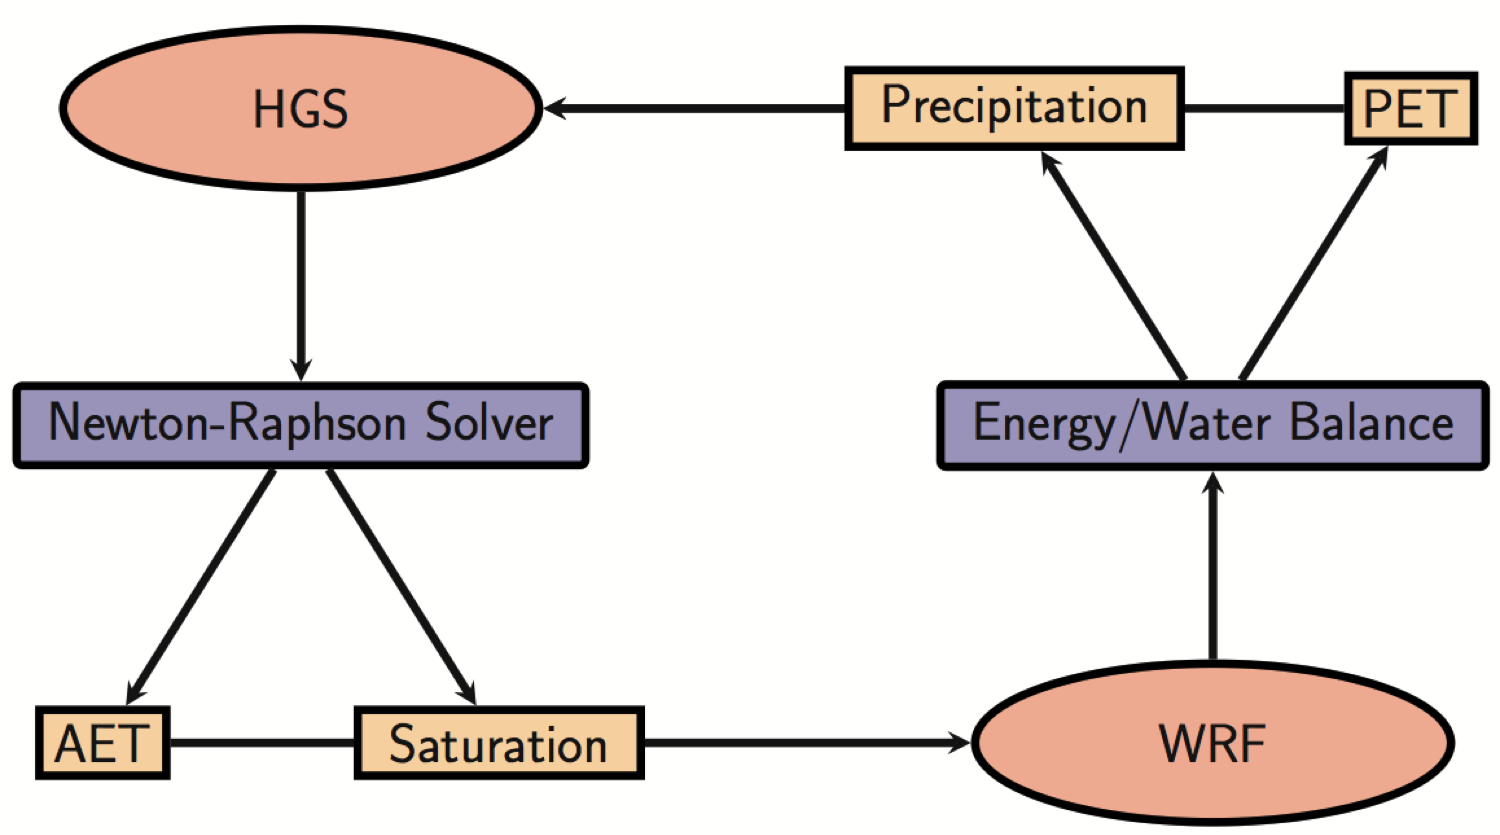 HGS-WRF Model Flowchart